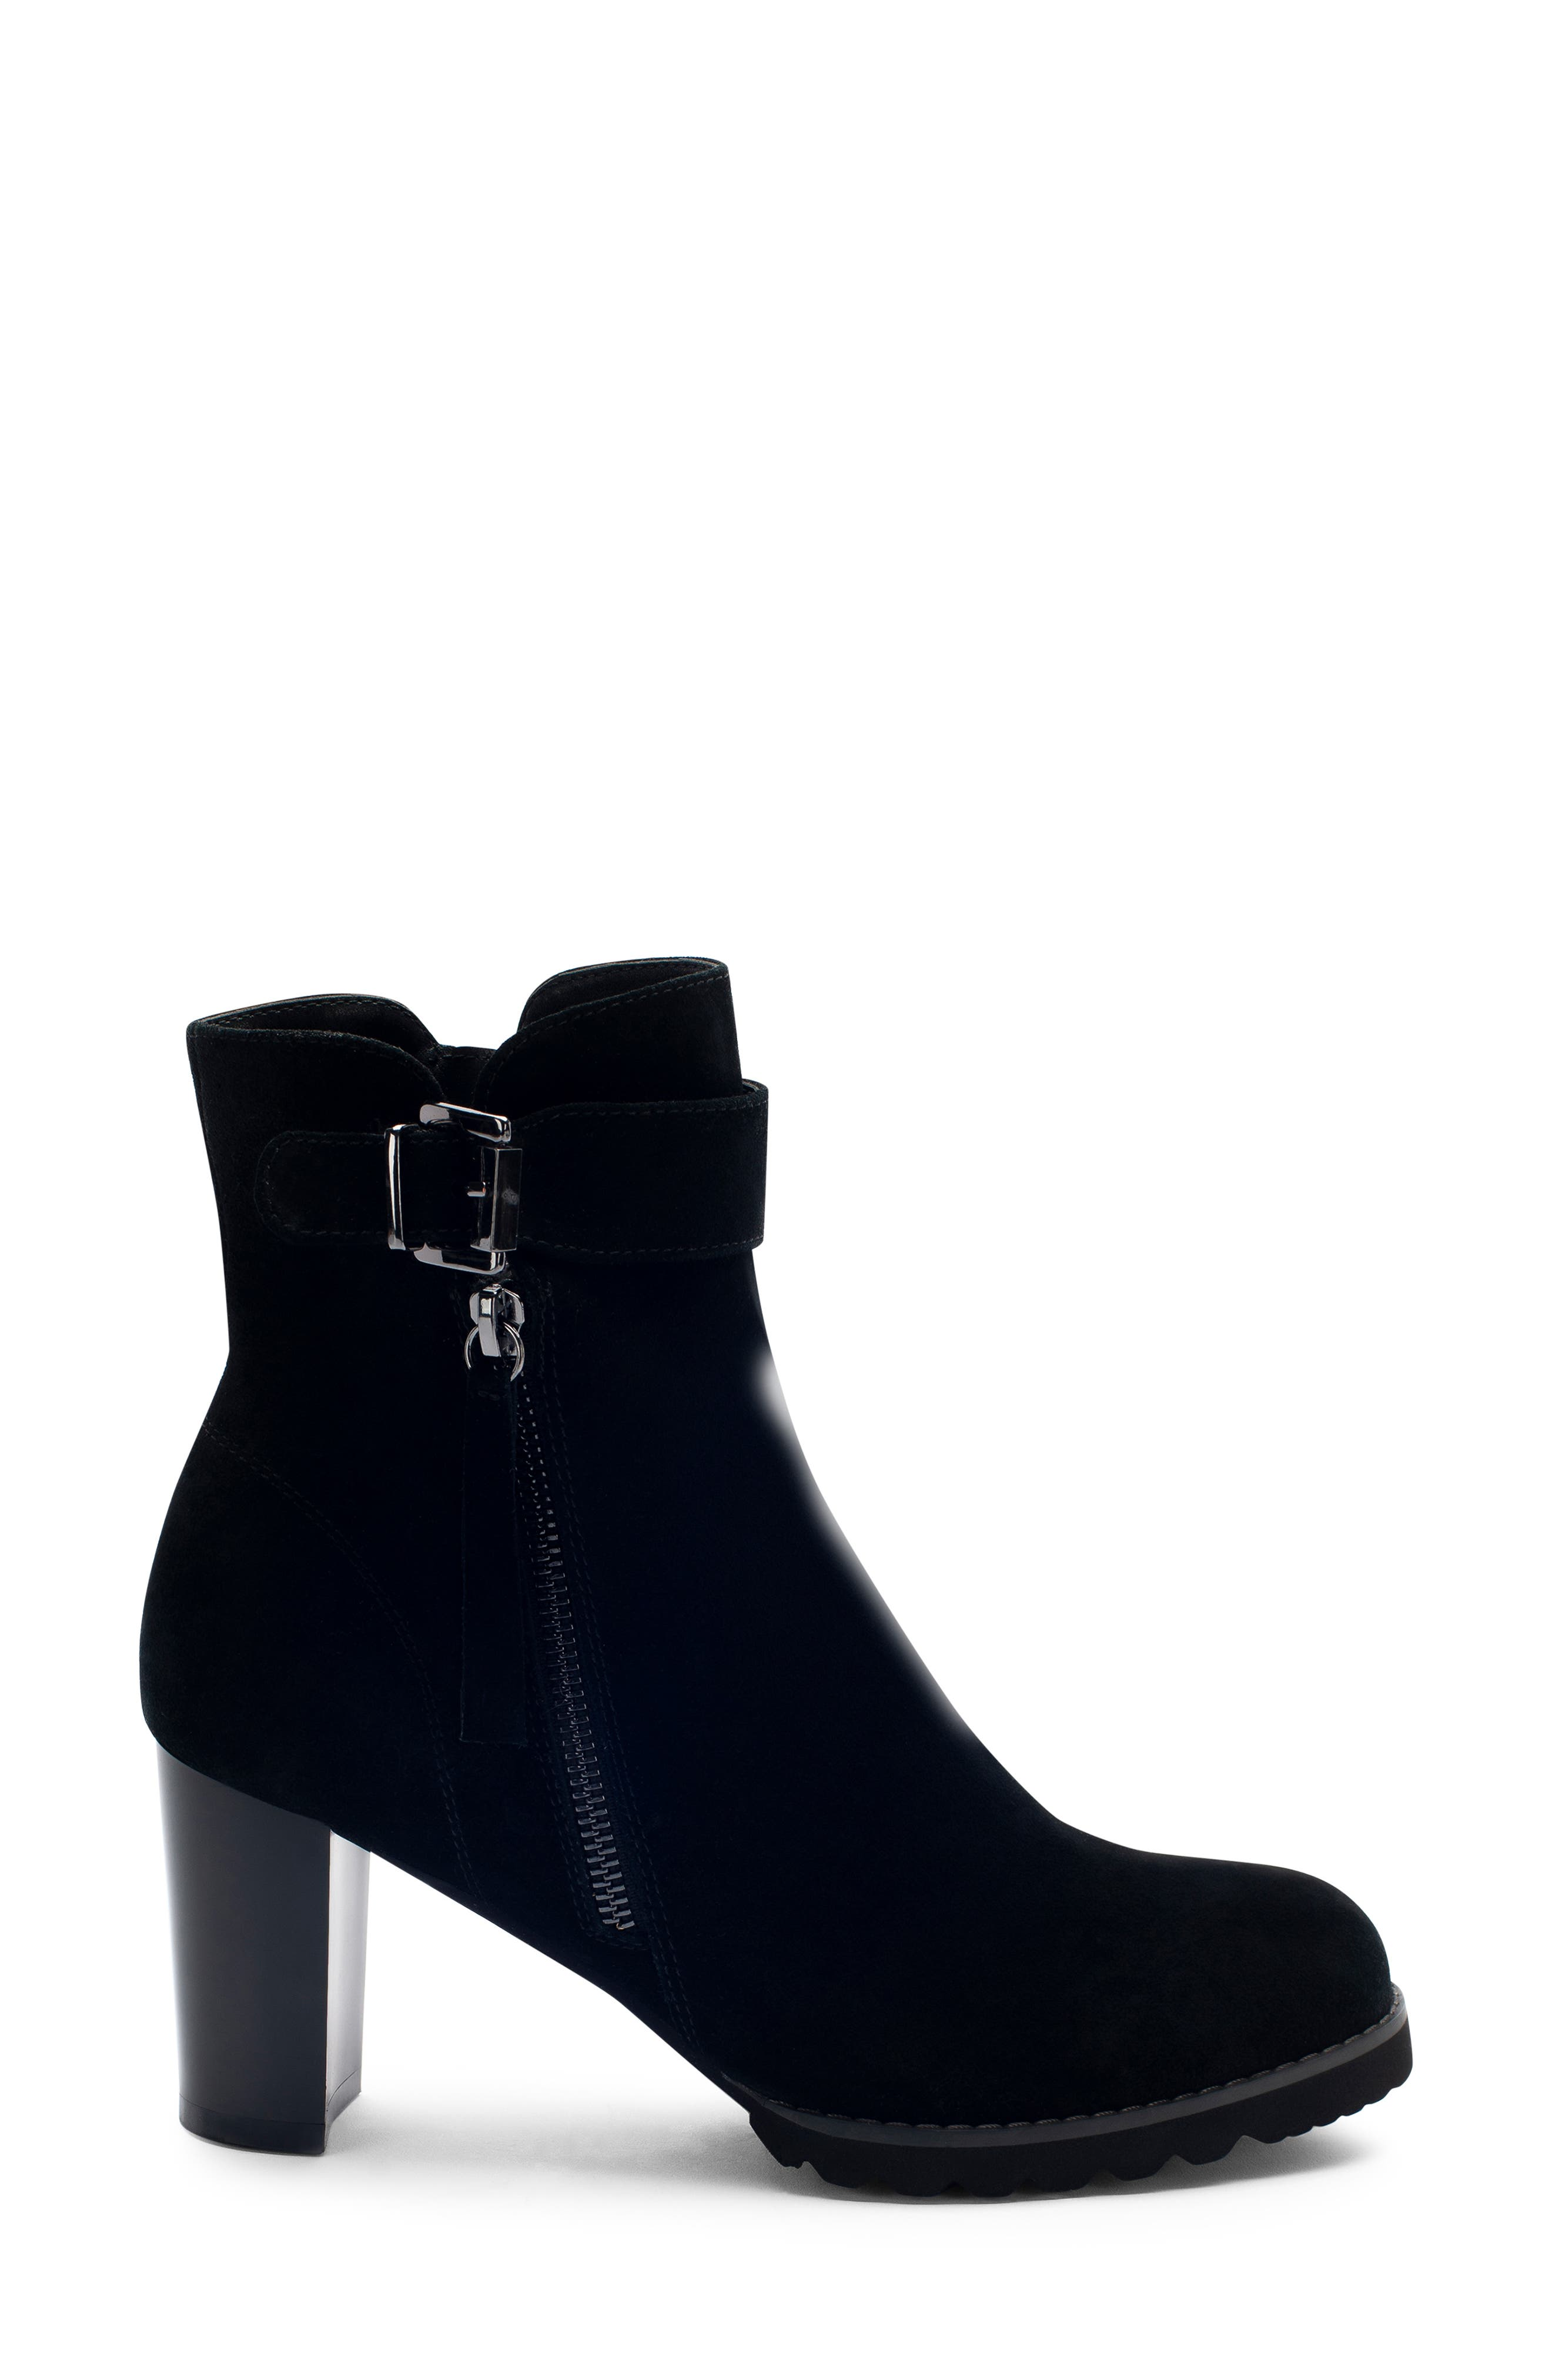 Anic Waterproof Ankle Boot,                             Alternate thumbnail 3, color,                             BLACK SUEDE